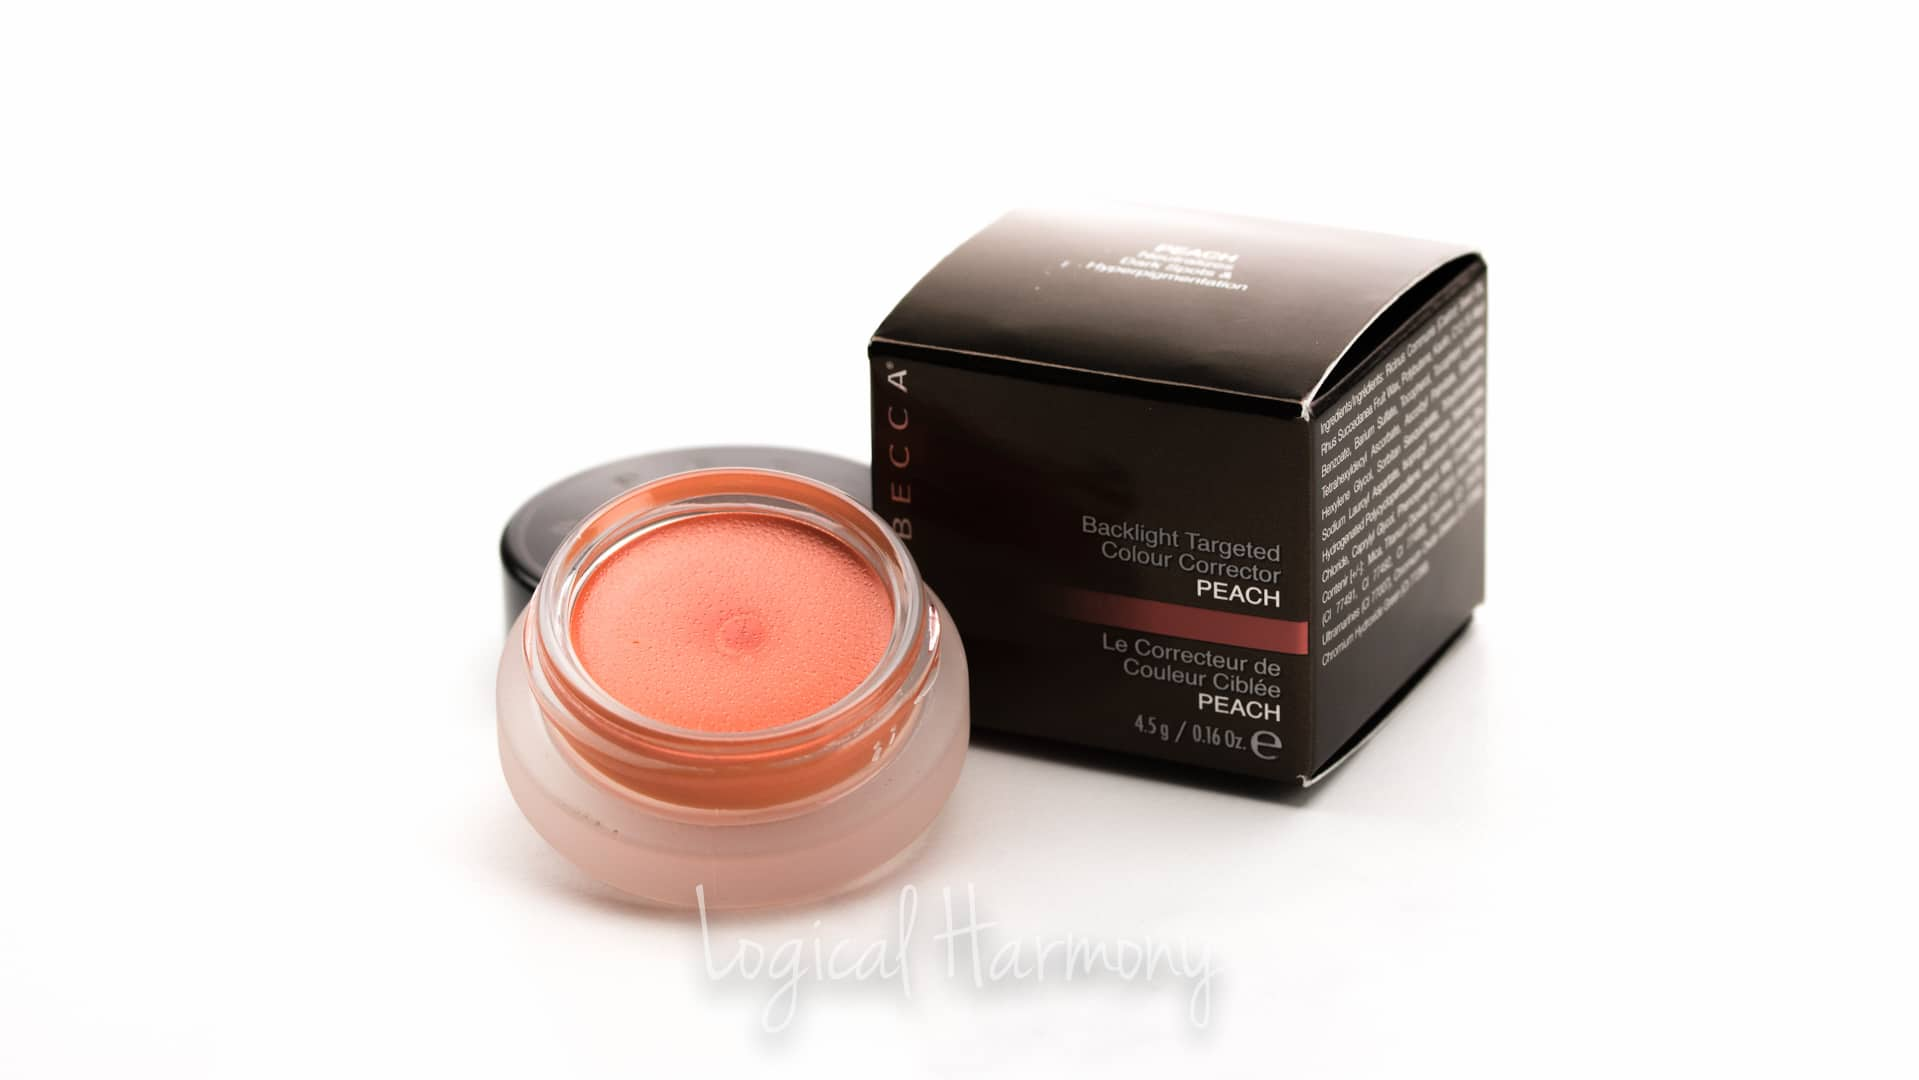 BECCA Backlight Targeted Colour Corrector in Peach